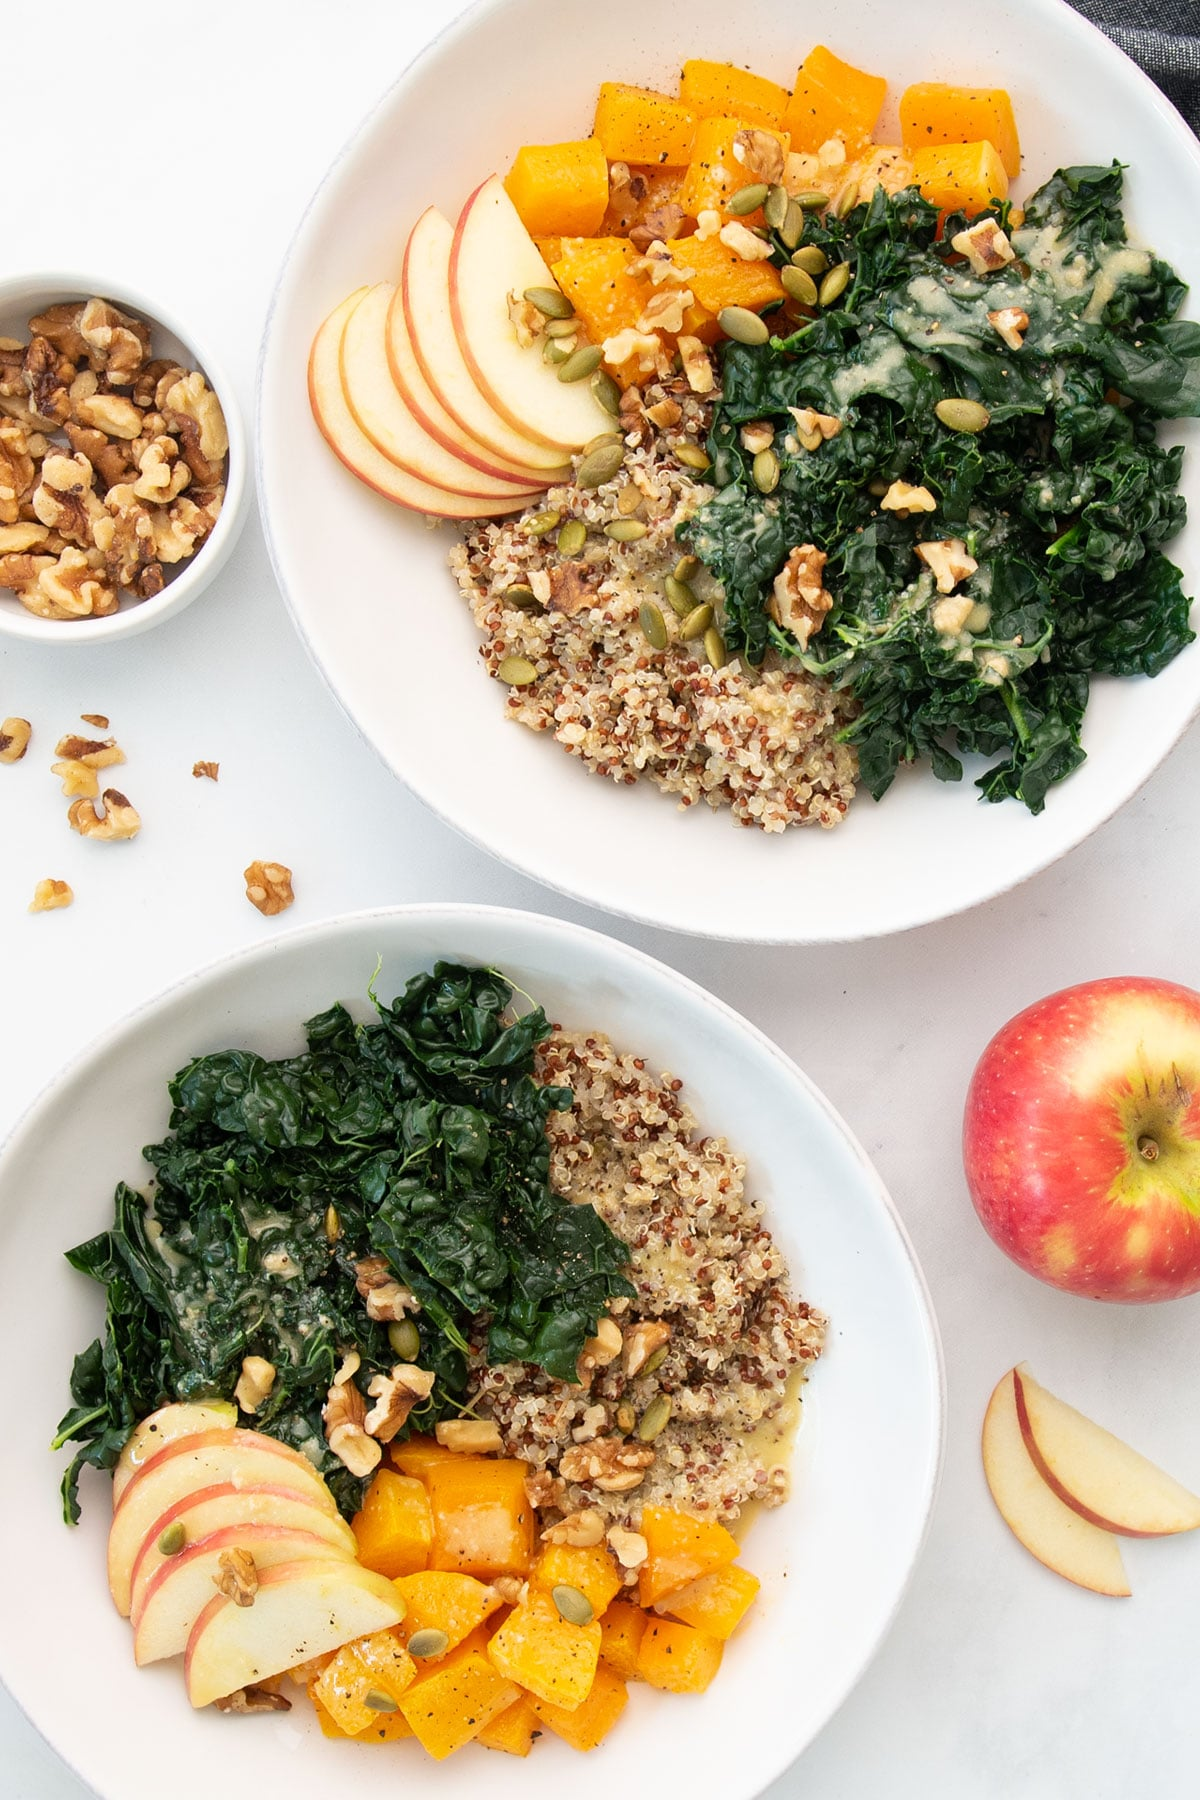 two grain bowls with quinoa, kale, squash, and apples on white background